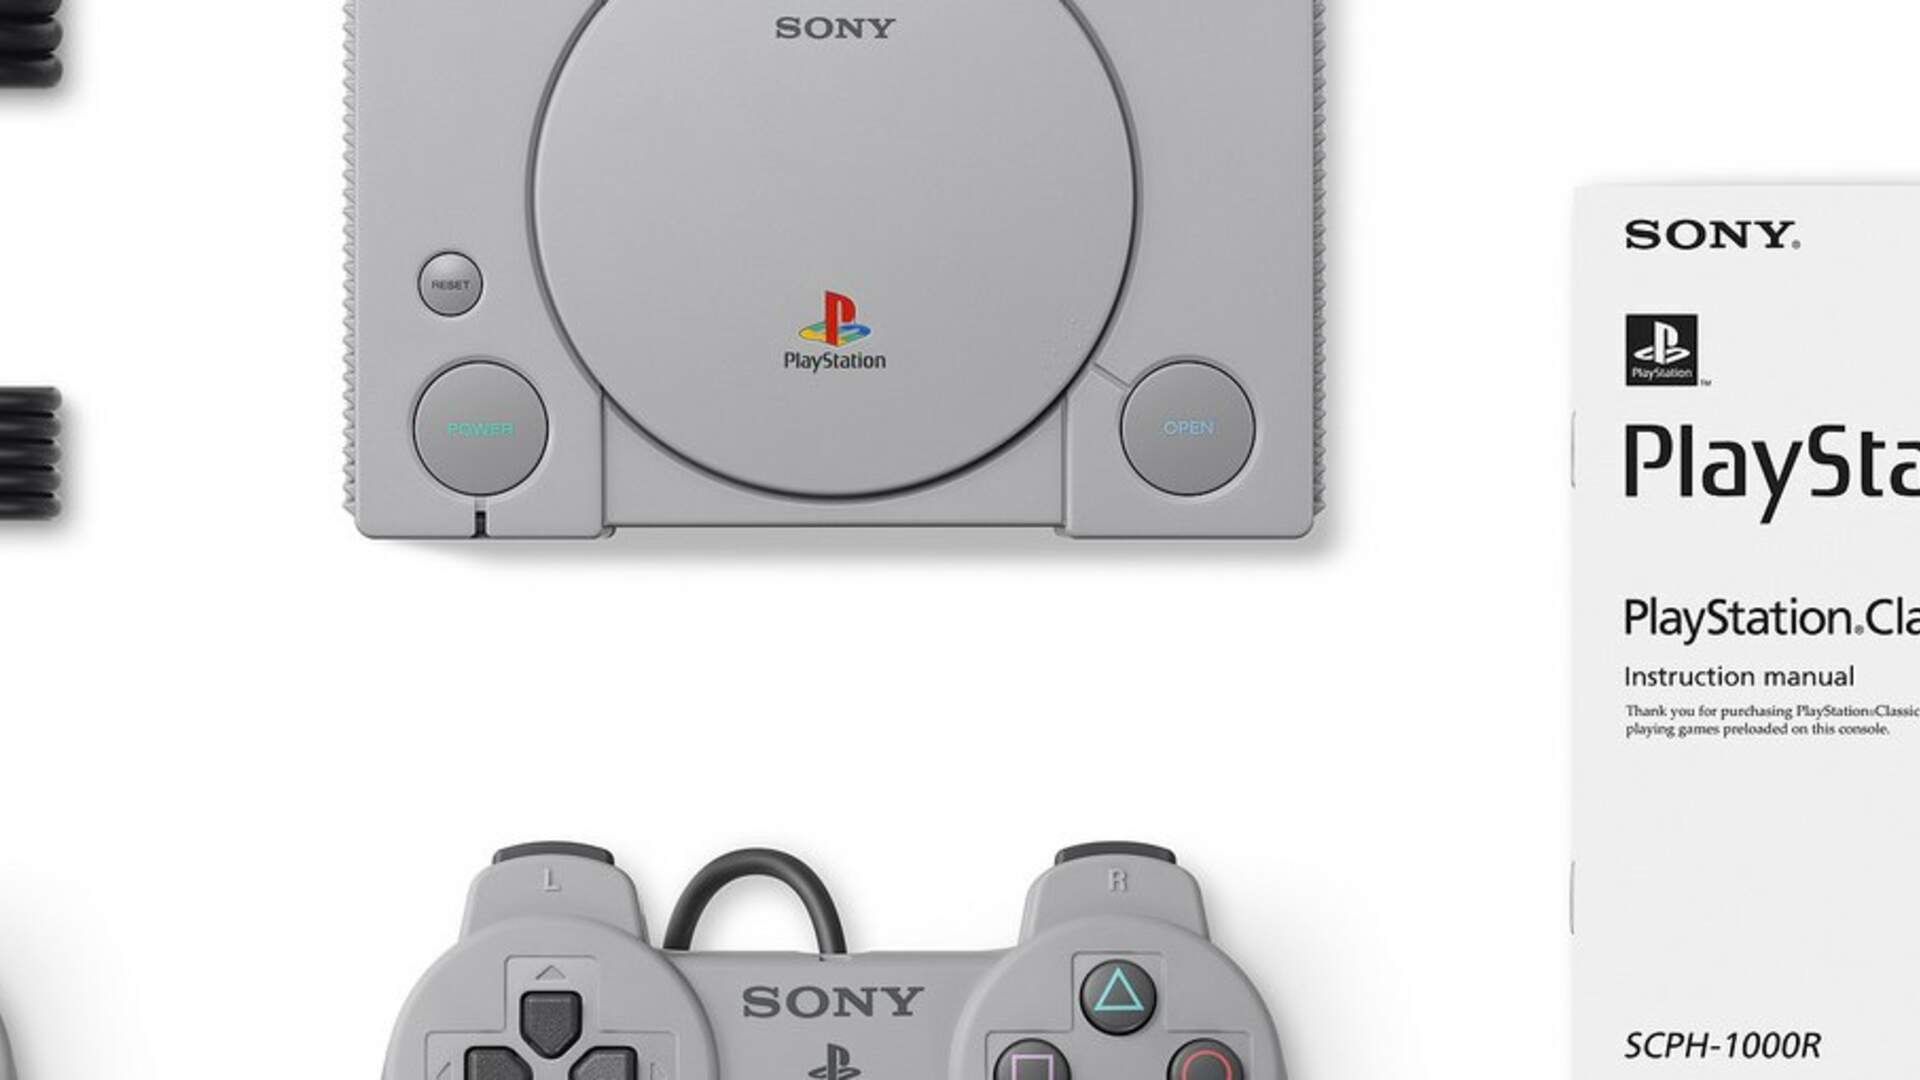 The PlayStation Name Was Nearly Axed by Sony's Founder